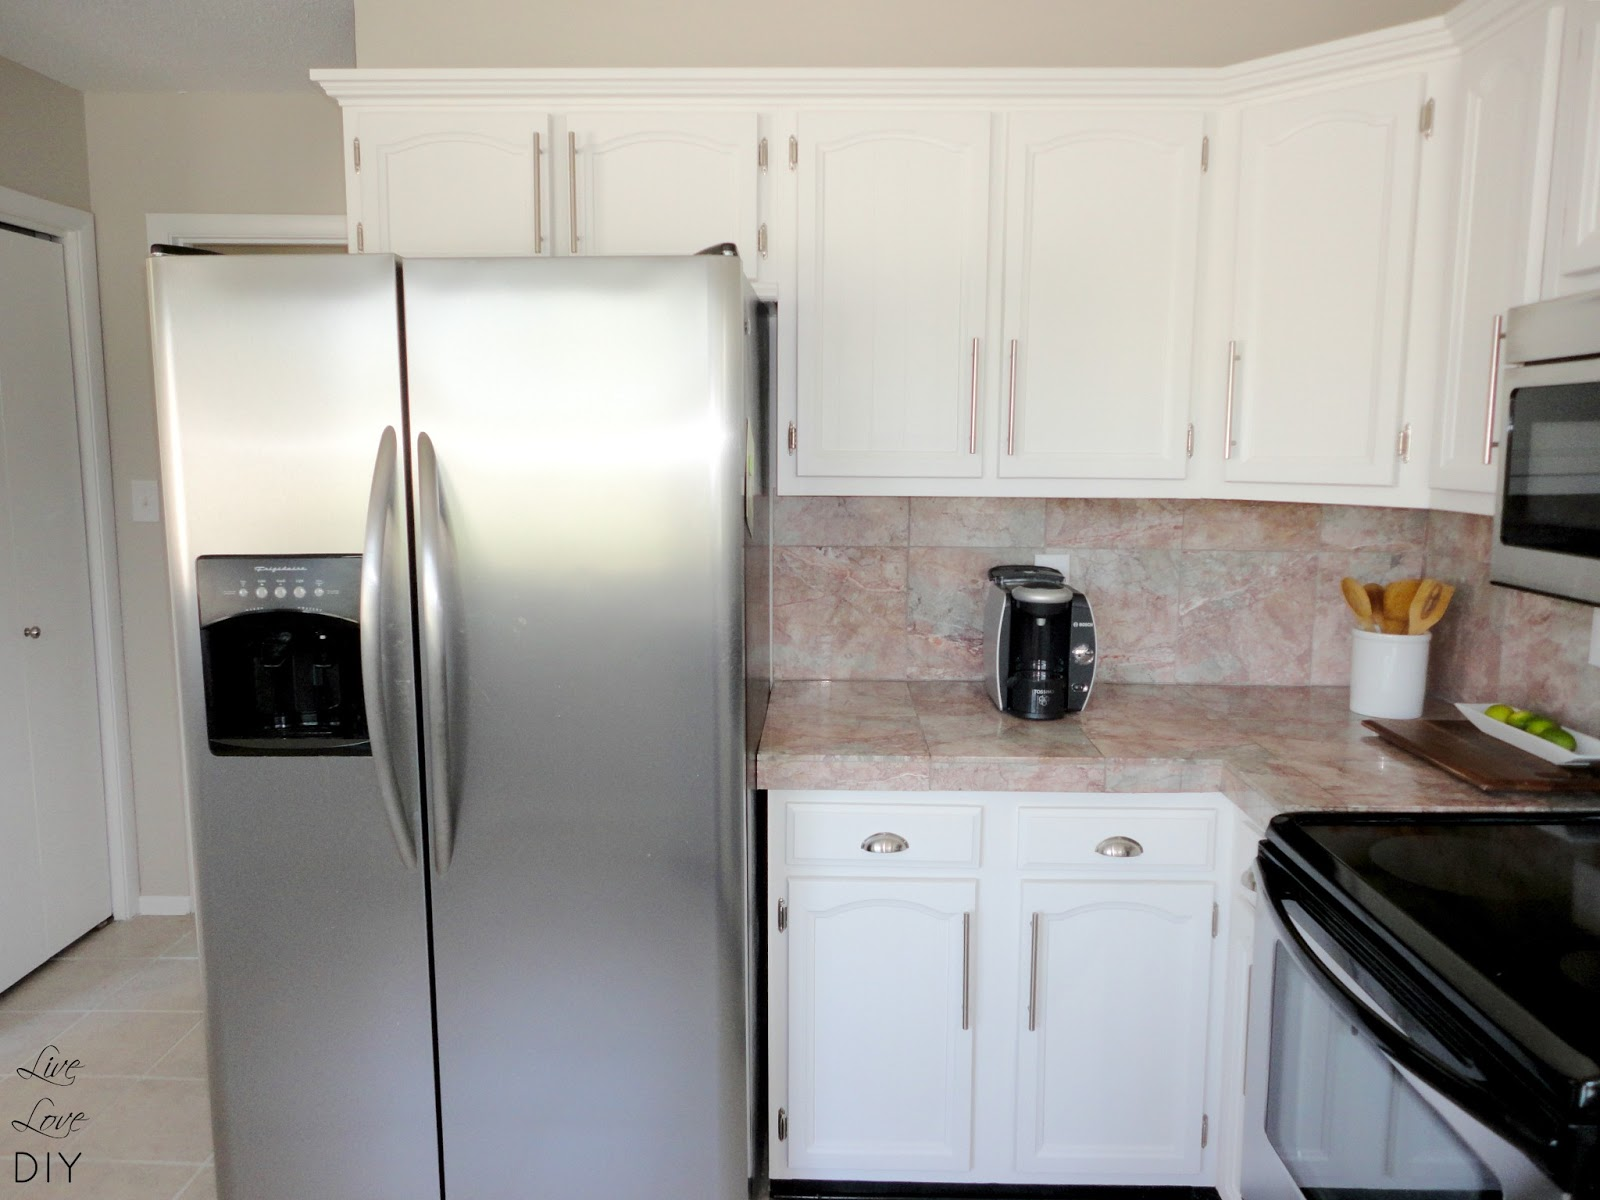 10 steps to paint your kitchen cabinets the easy way an easy tutorial anyone can - Behr Paint Kitchen Cabinets